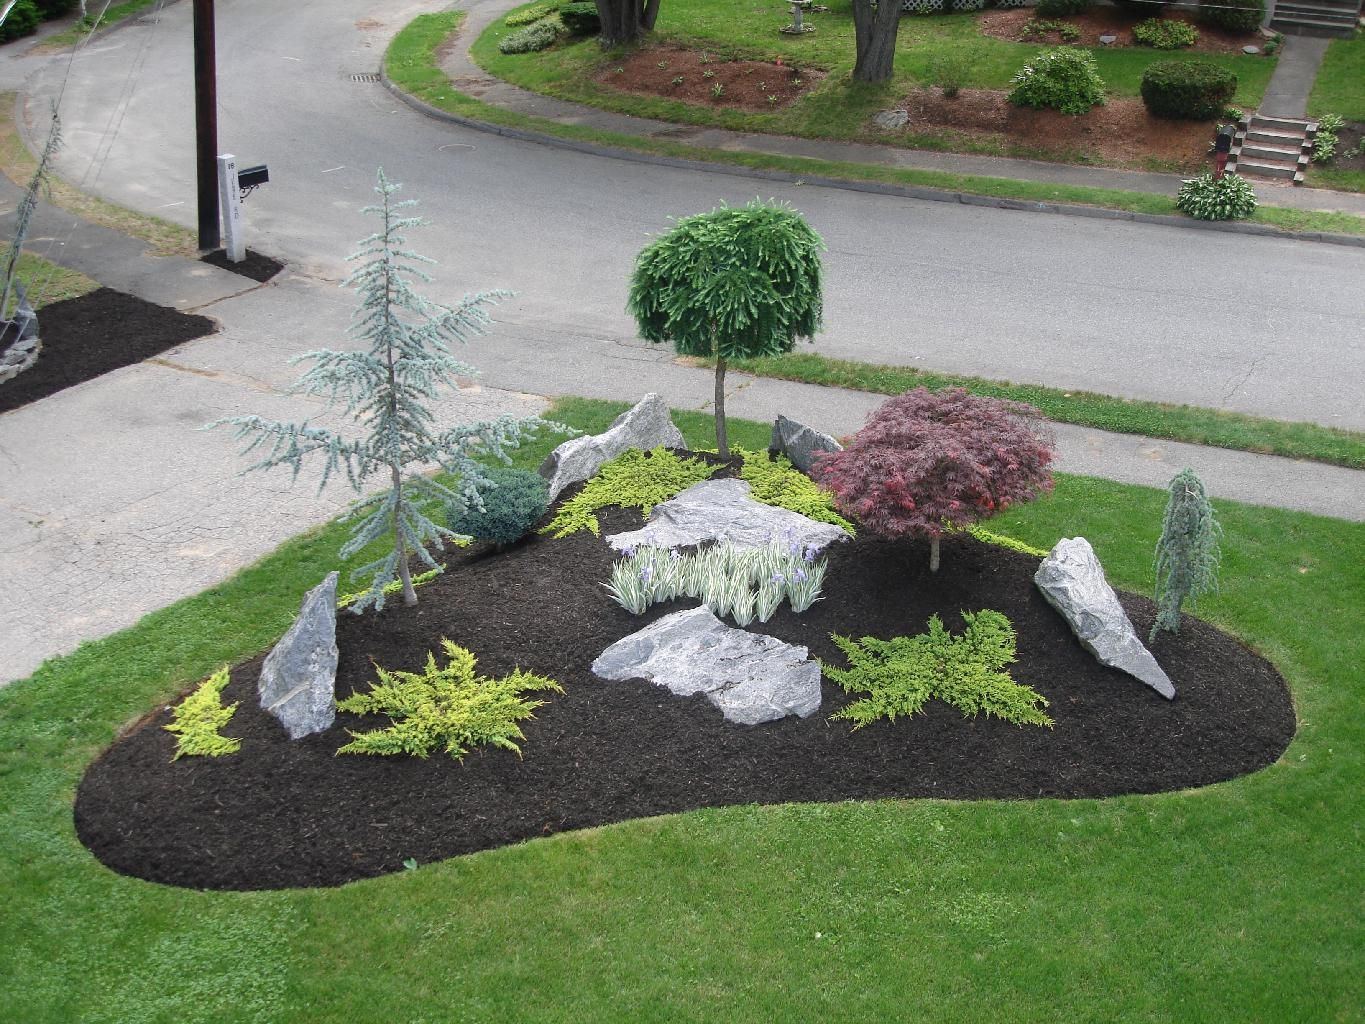 Simple landscape designs with rock beds google search for Basic landscaping ideas for front yard